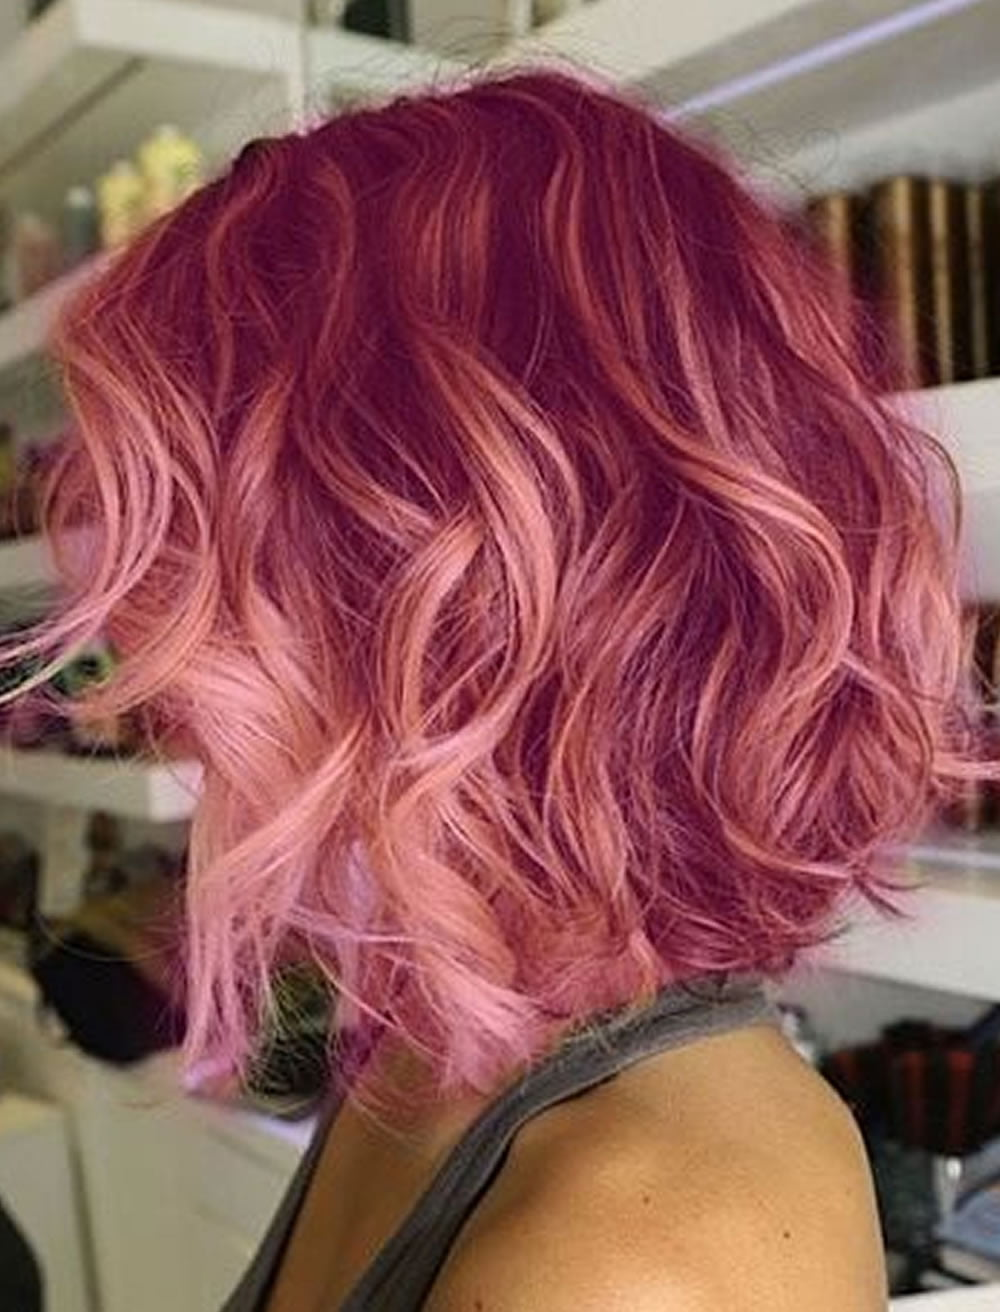 Red Hair Color Wavy Bob Hairstyles For Trendy Inverted Haircuts The